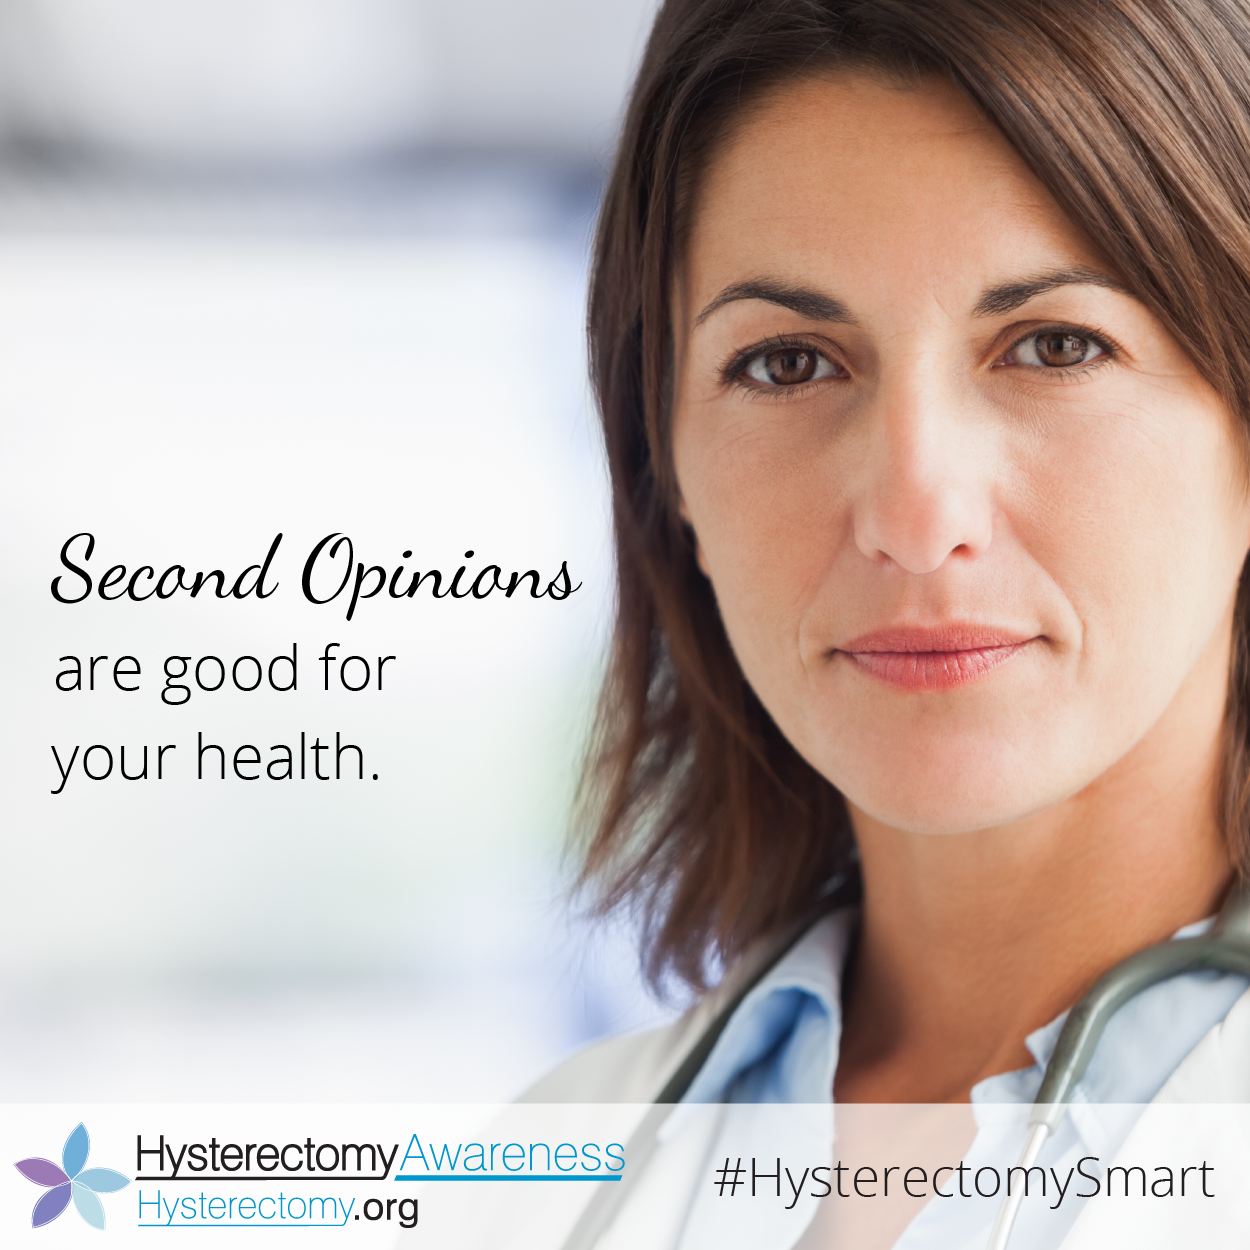 Second Opinions are Good for Your Health #HysterectomySmart